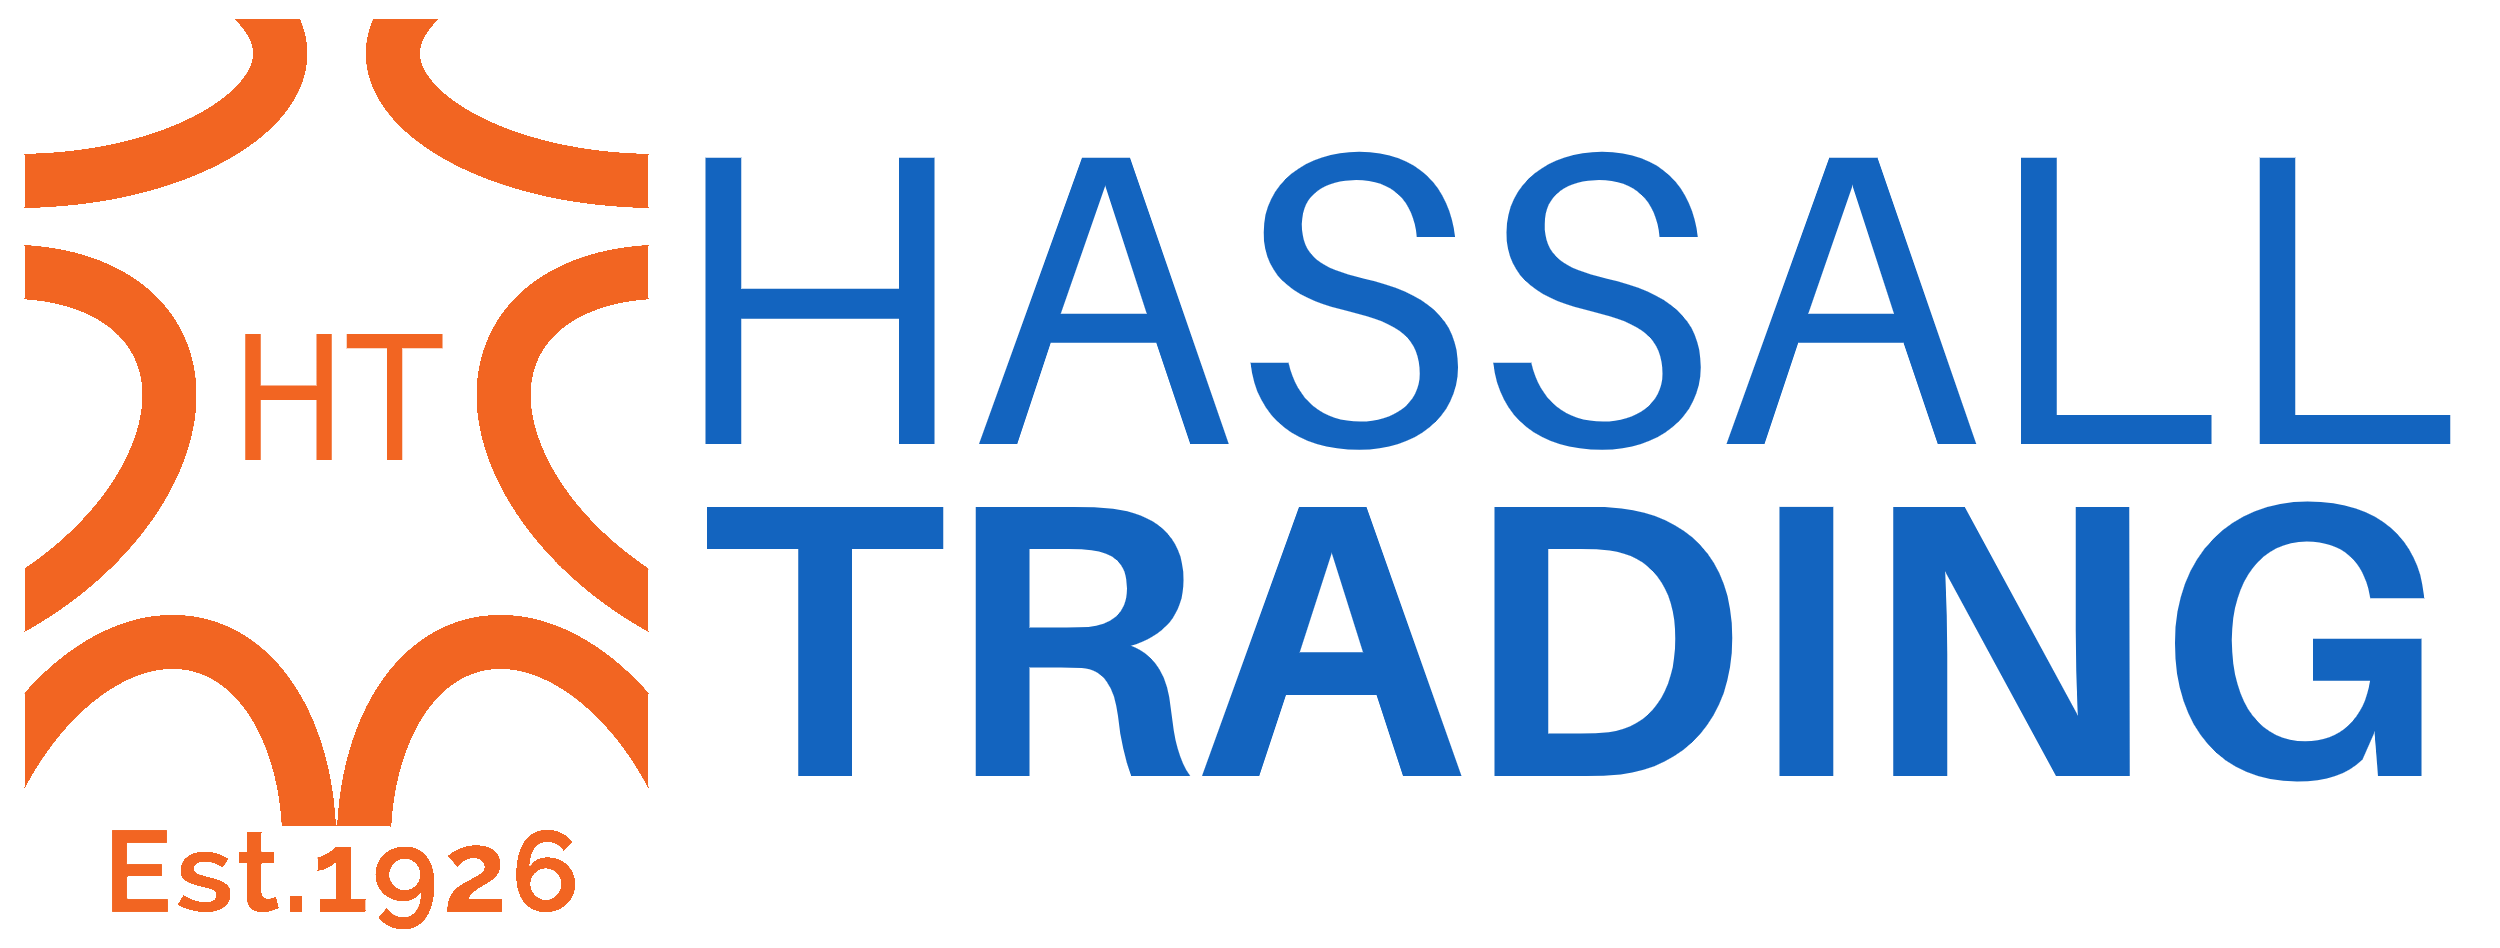 Hassall Trading